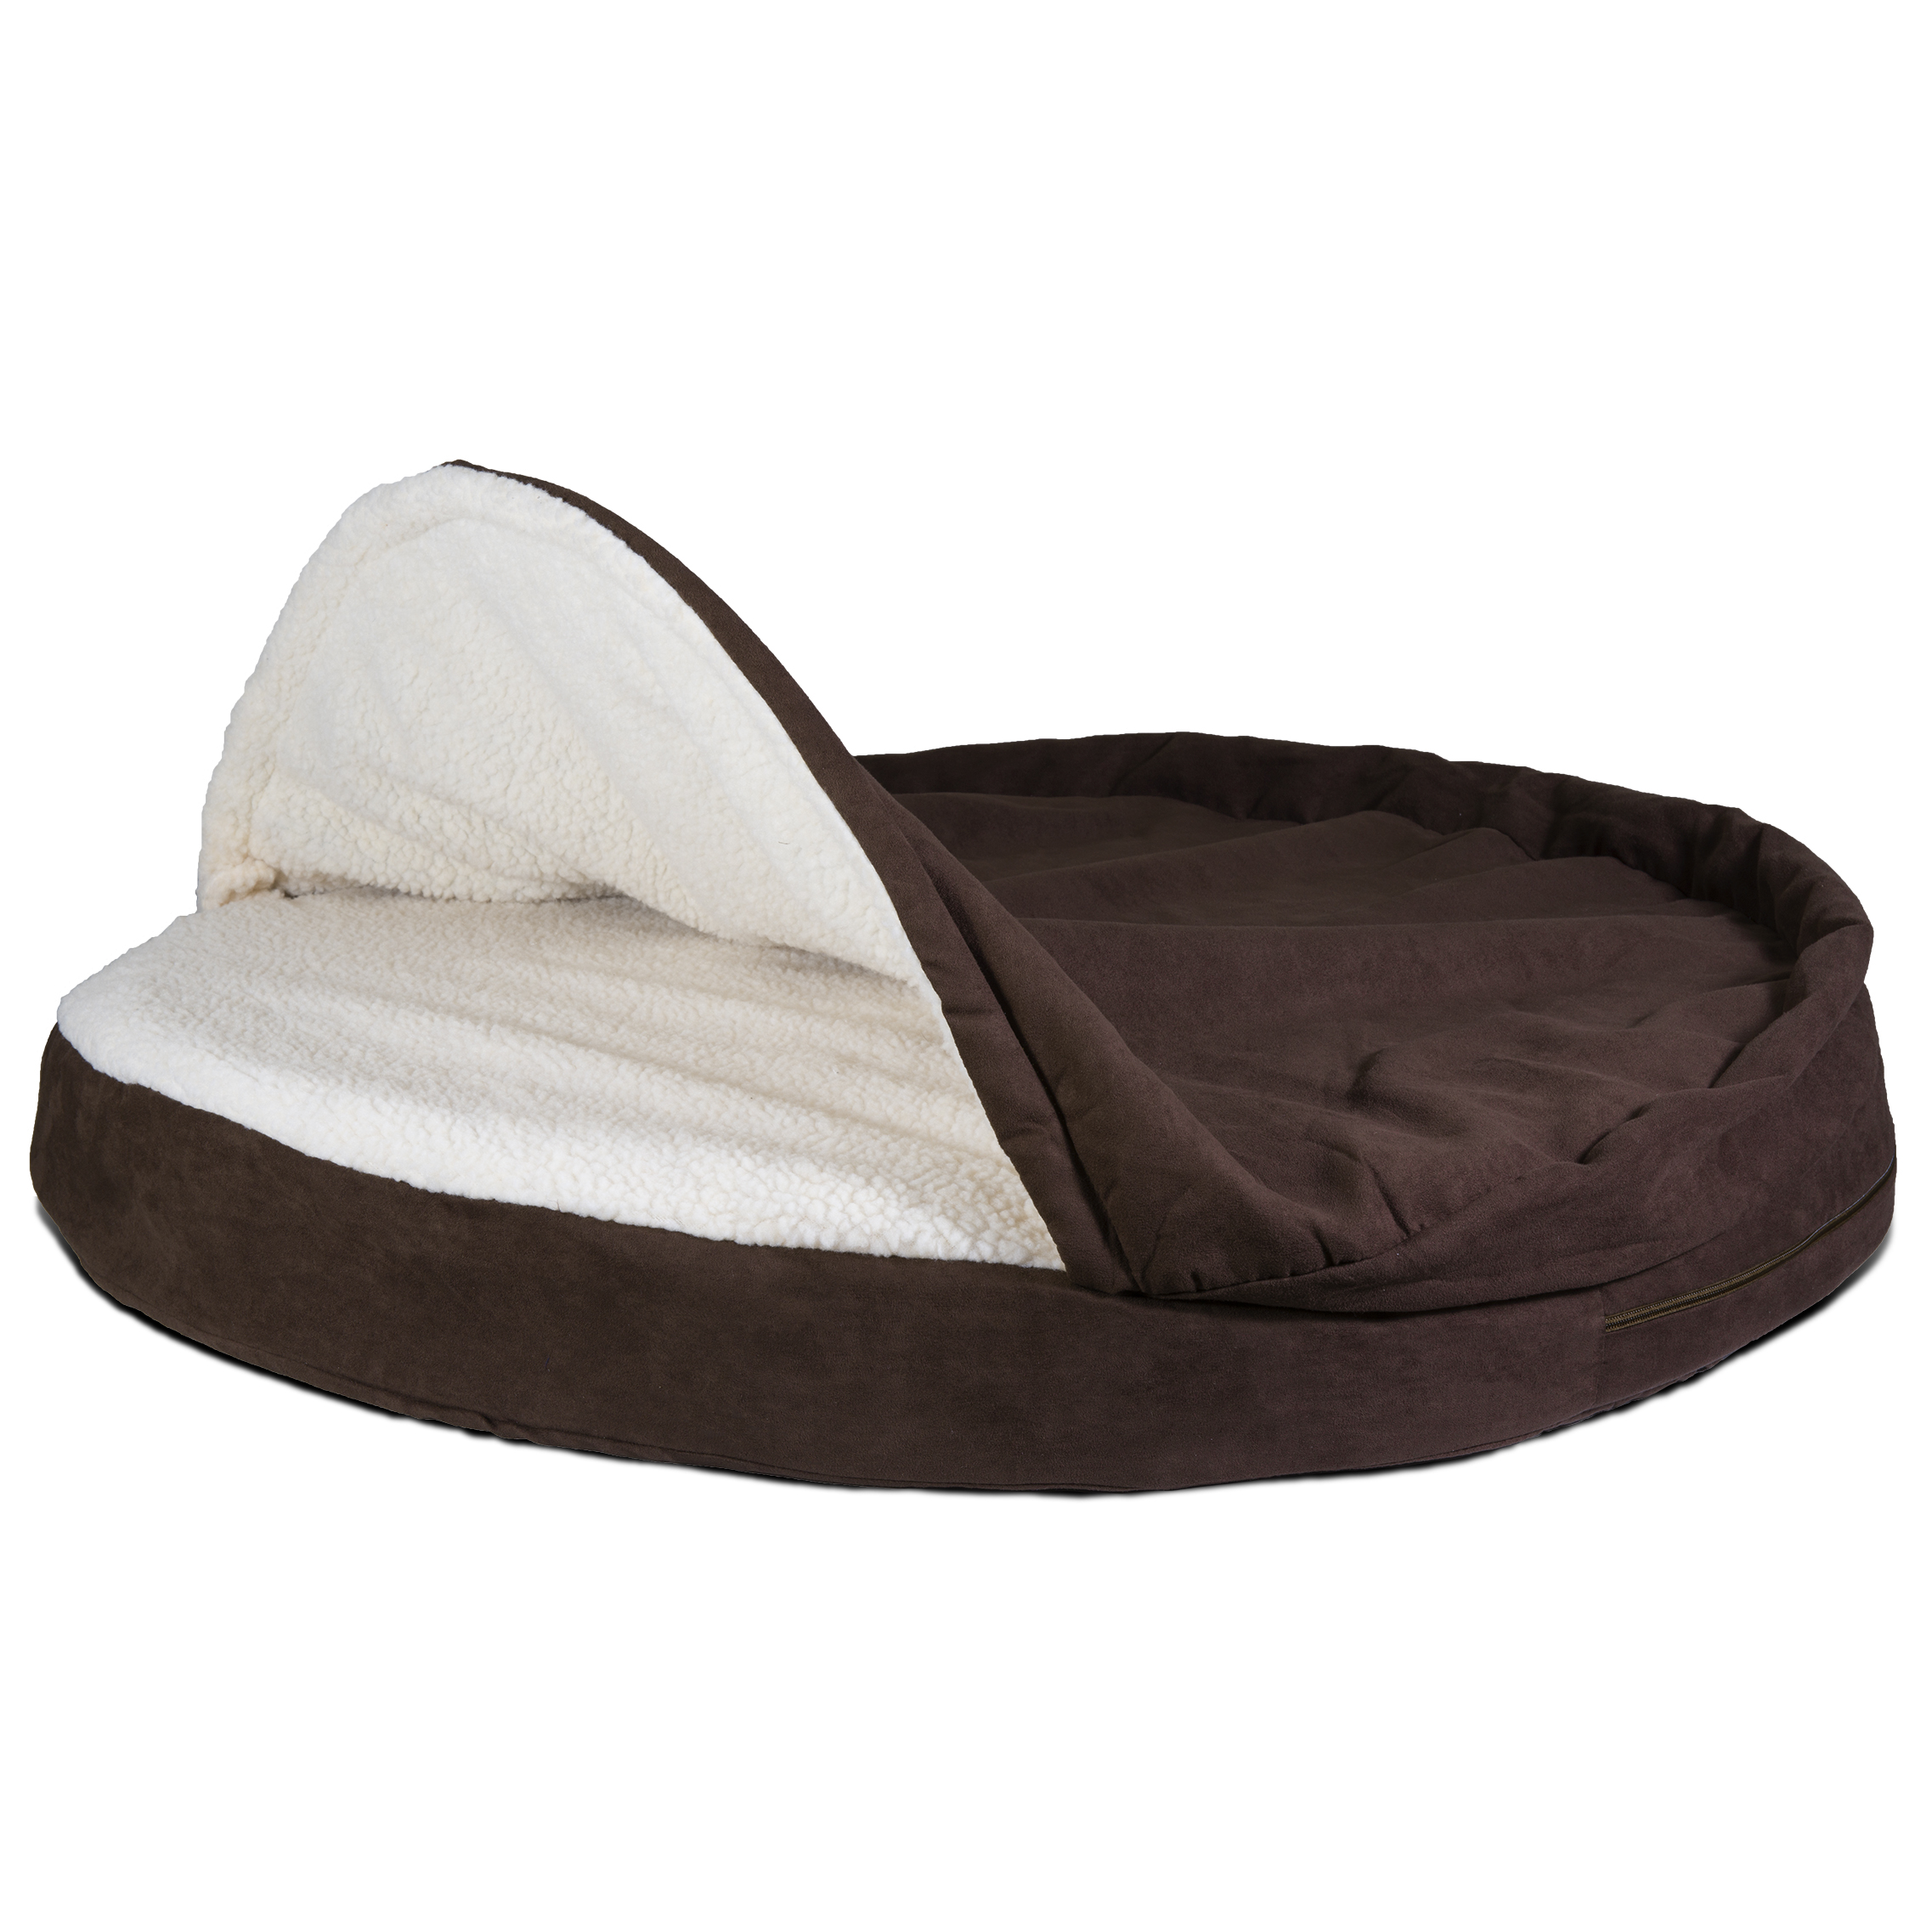 FurHaven Pet Dog Bed | Cooling Gel Memory Foam Orthopedic Round Faux Sheepskin Snuggery Pet Bed for Dogs & Cats, Espresso, 35-Inch